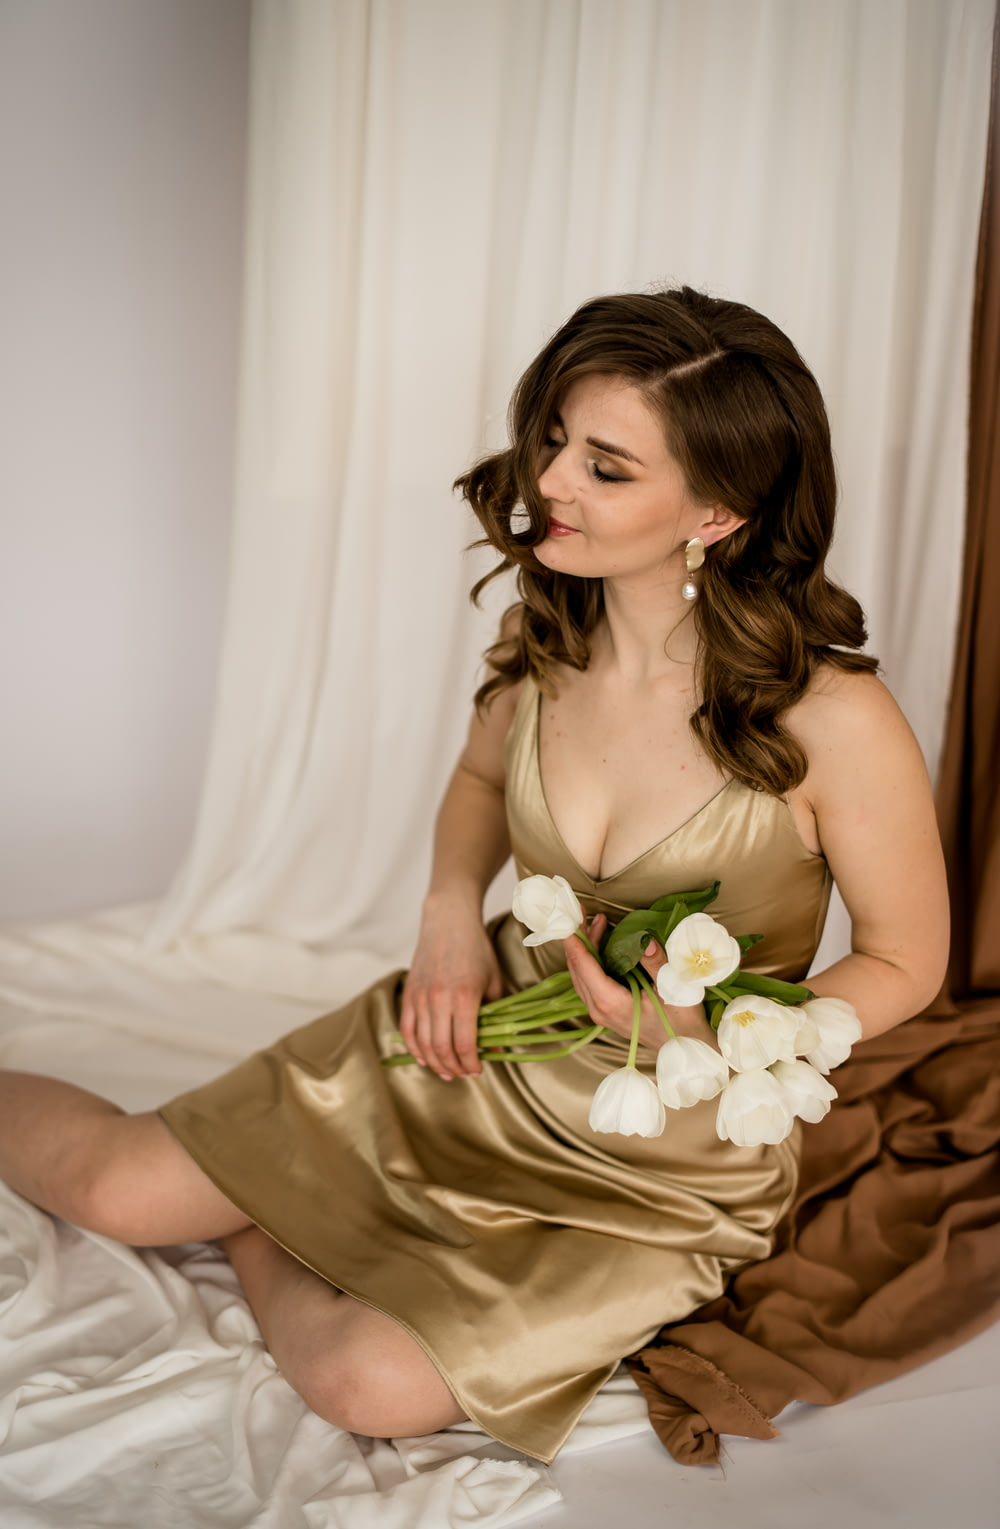 woman in beige spaghetti strap dress holding white rose bouquet